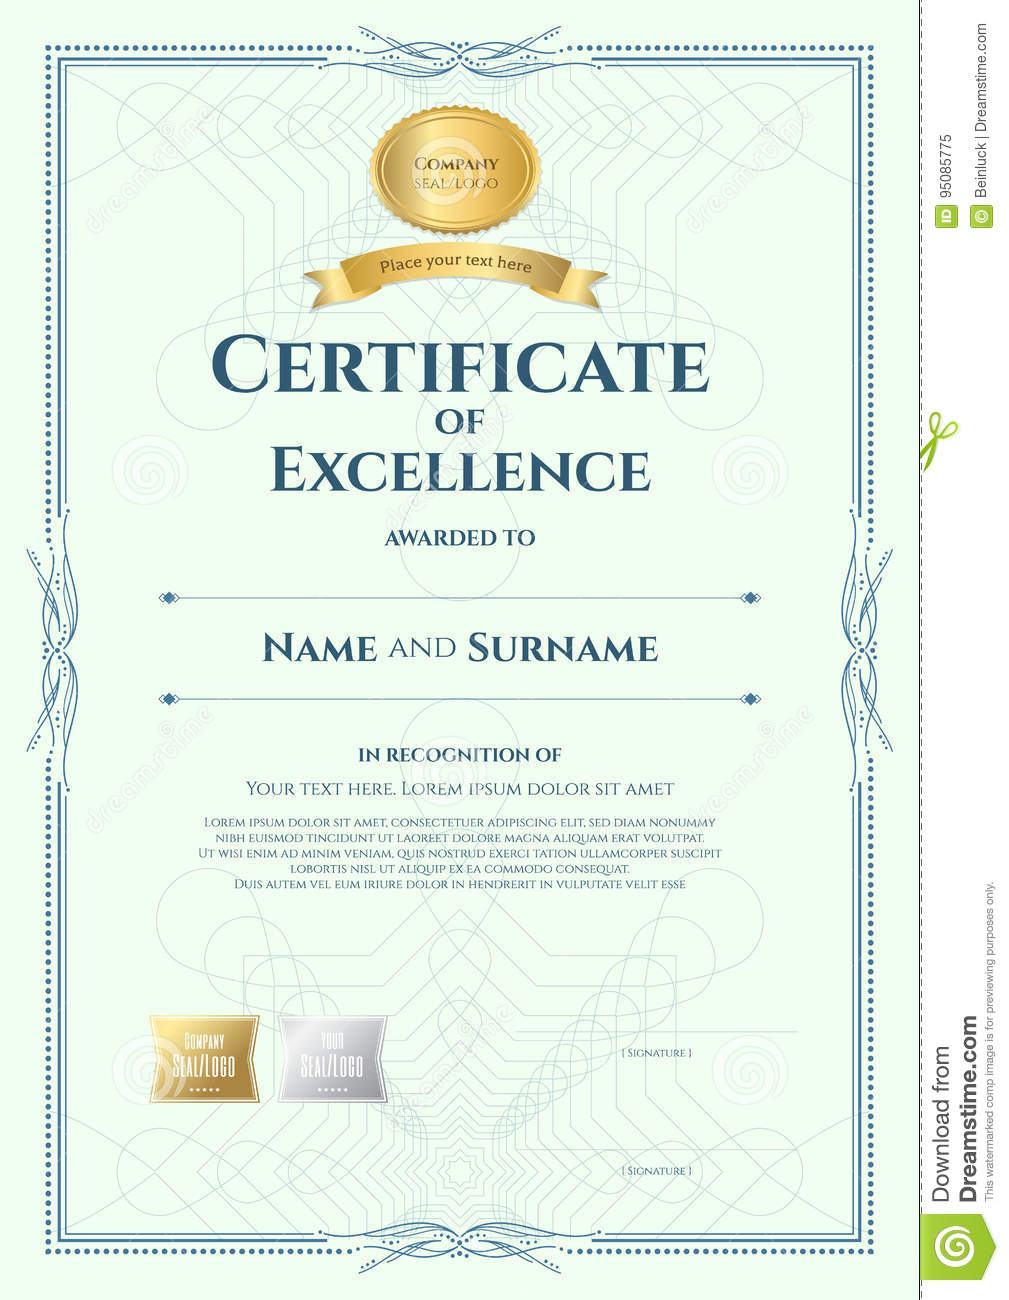 Portrait Certificate Of Excellence Template With Award Inside Award Of Excellence Certificate Template